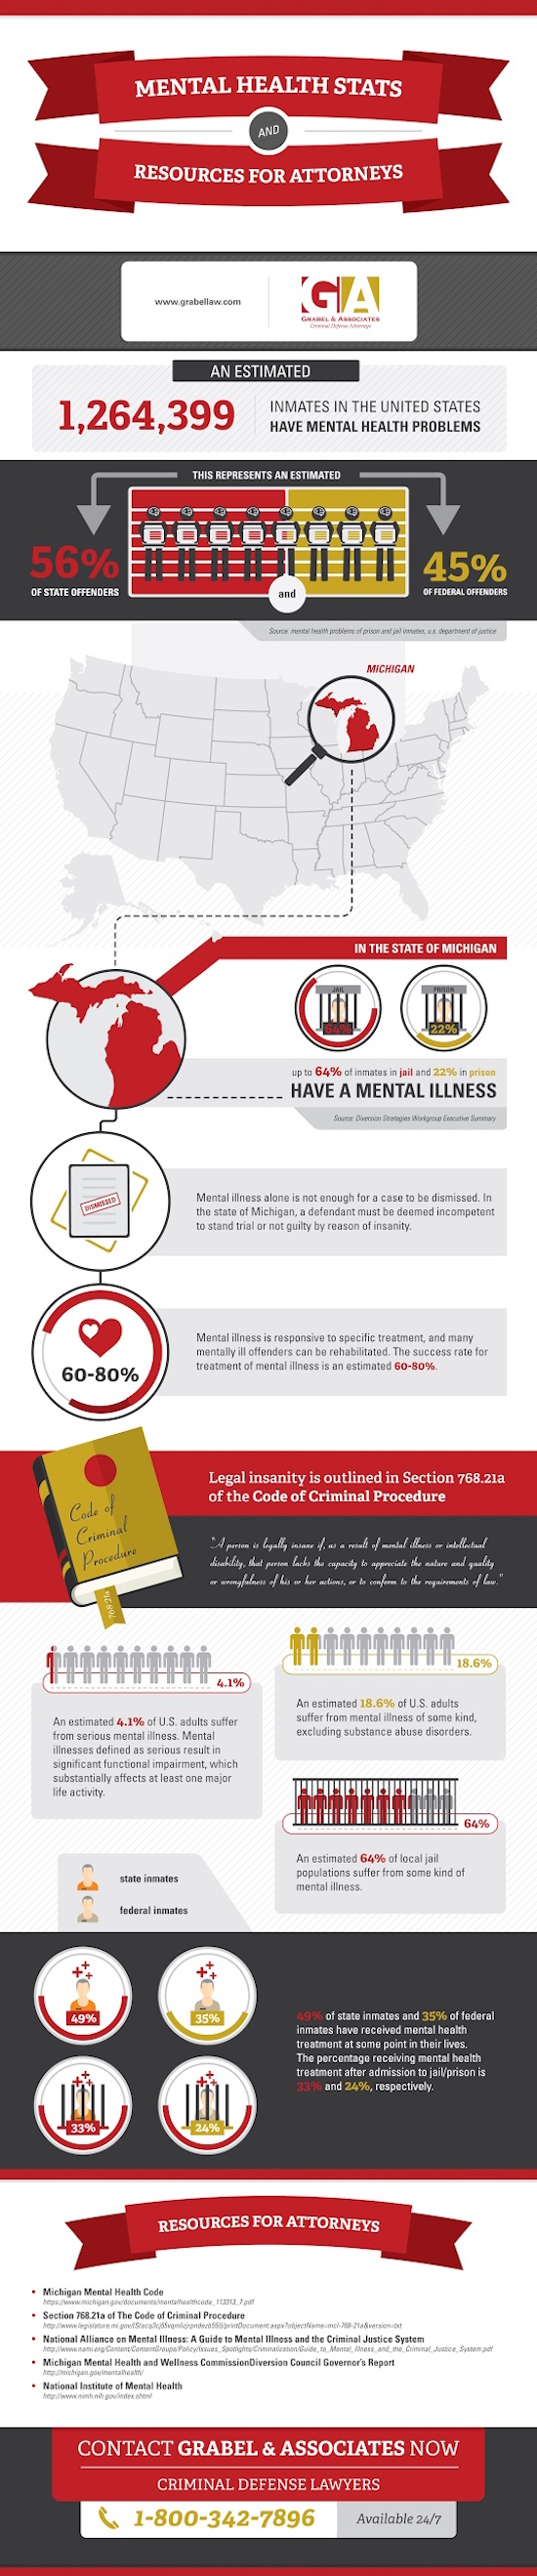 Mental Health Stats and Resources for Attorneys infographic